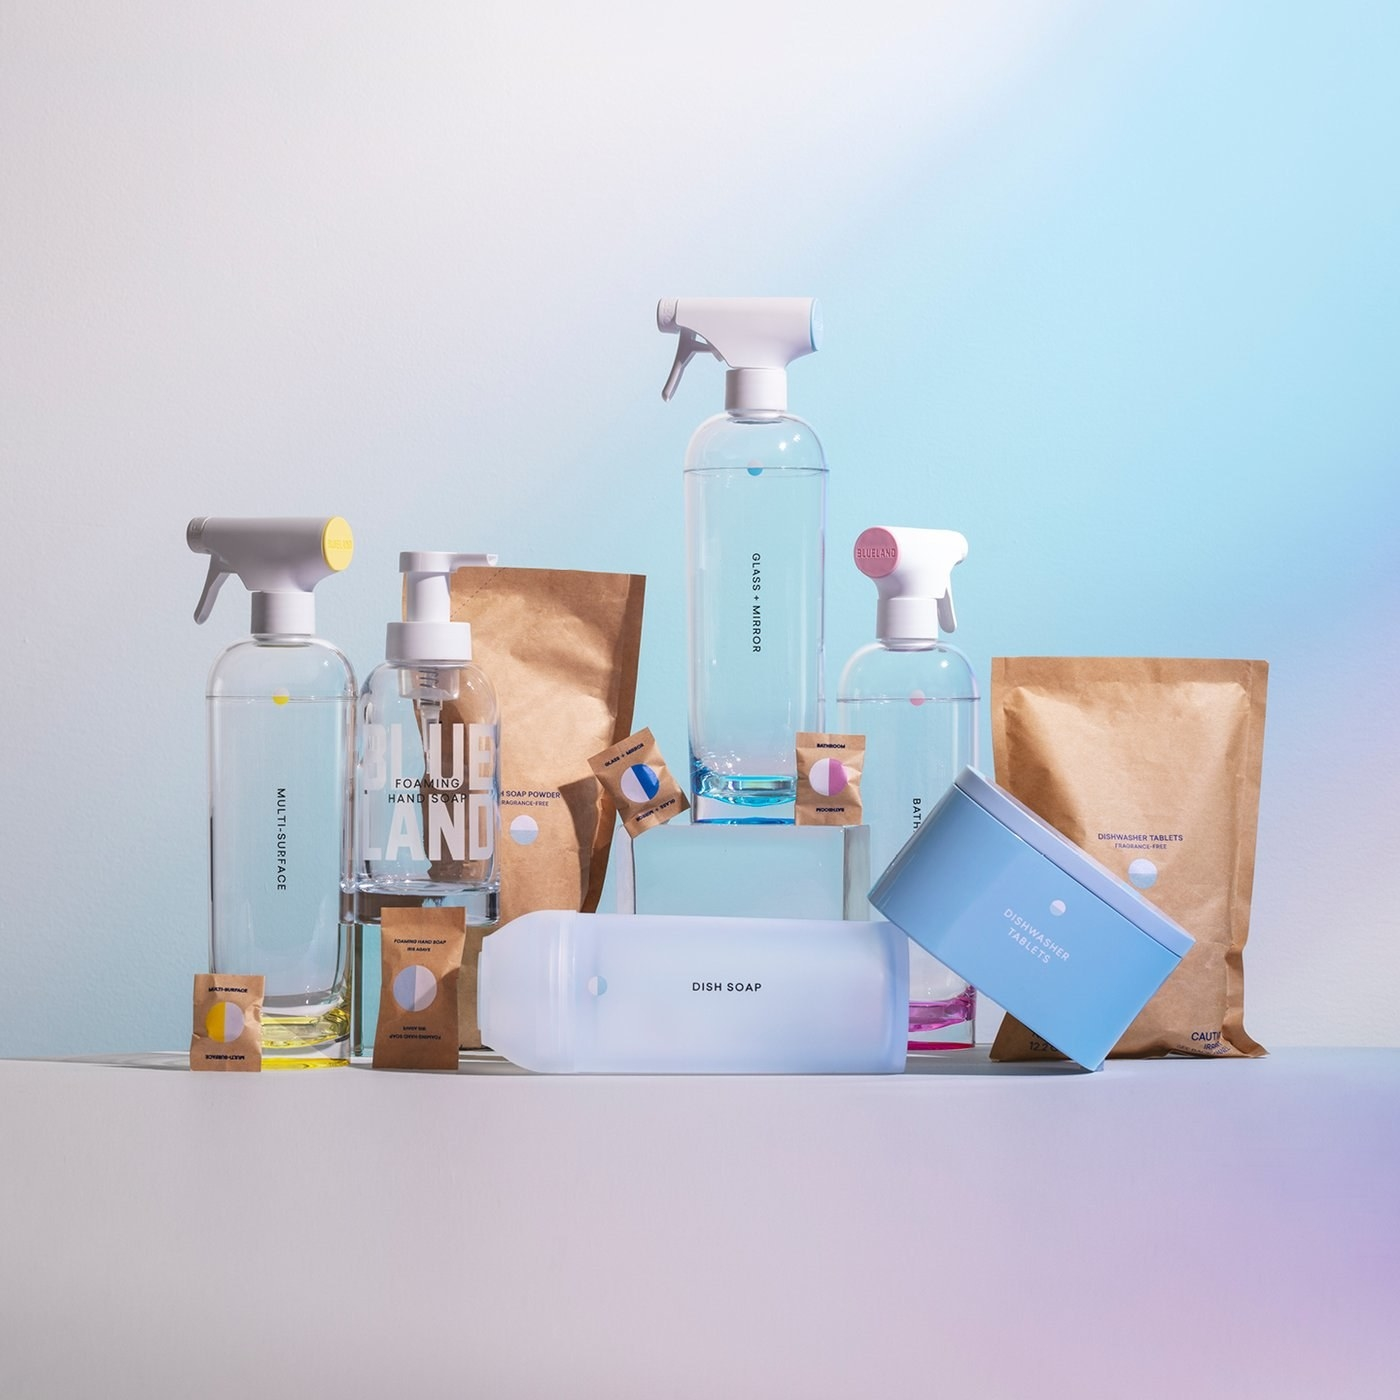 The Everyday Clean kit from Blueland